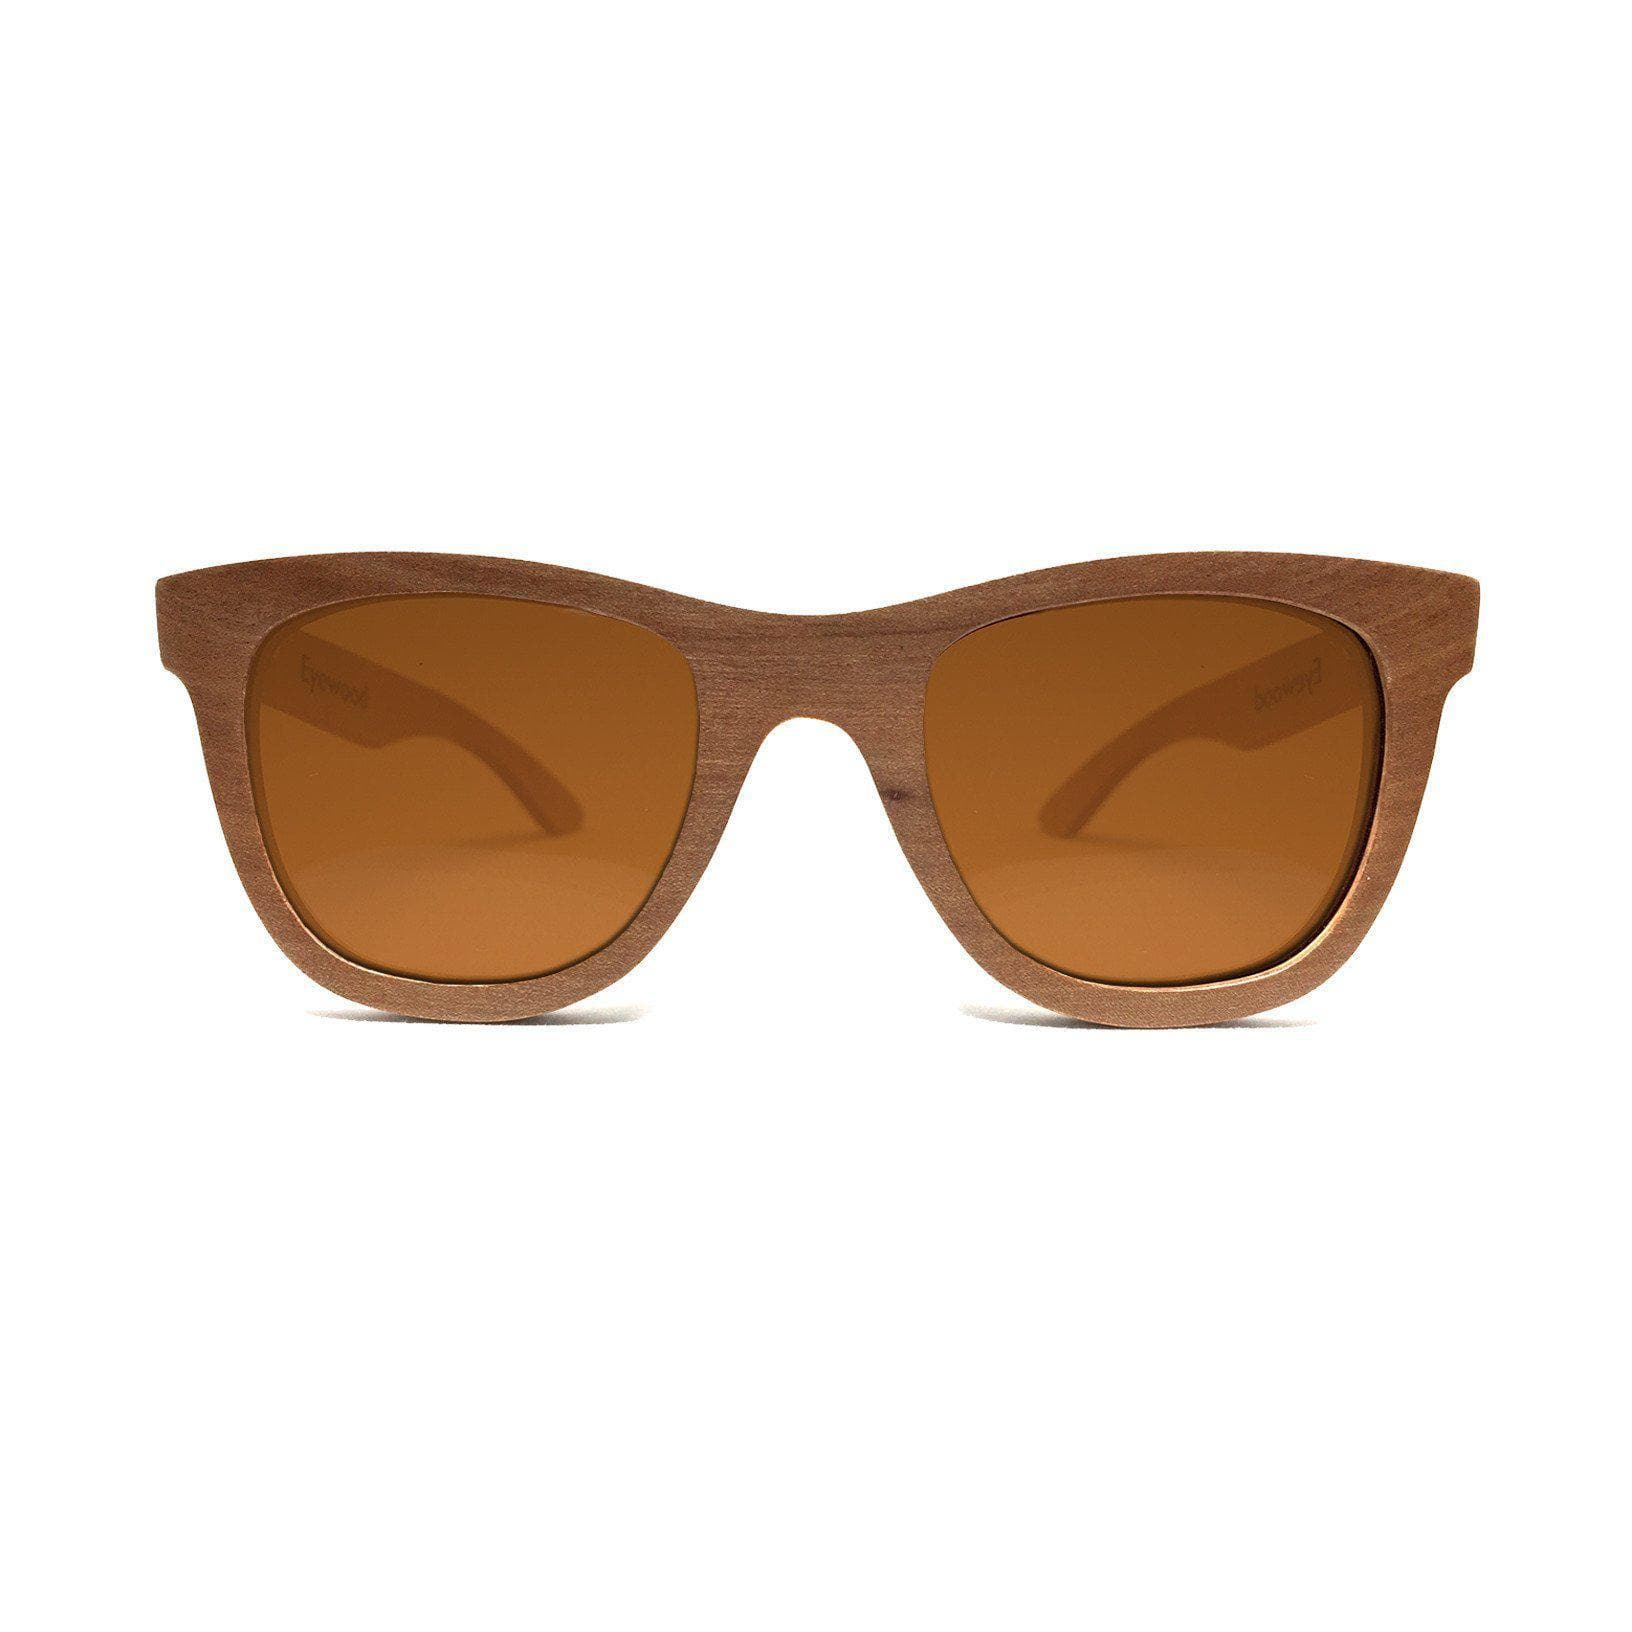 Eyewood Wayfarer - Waki - All wooden sunglasses front